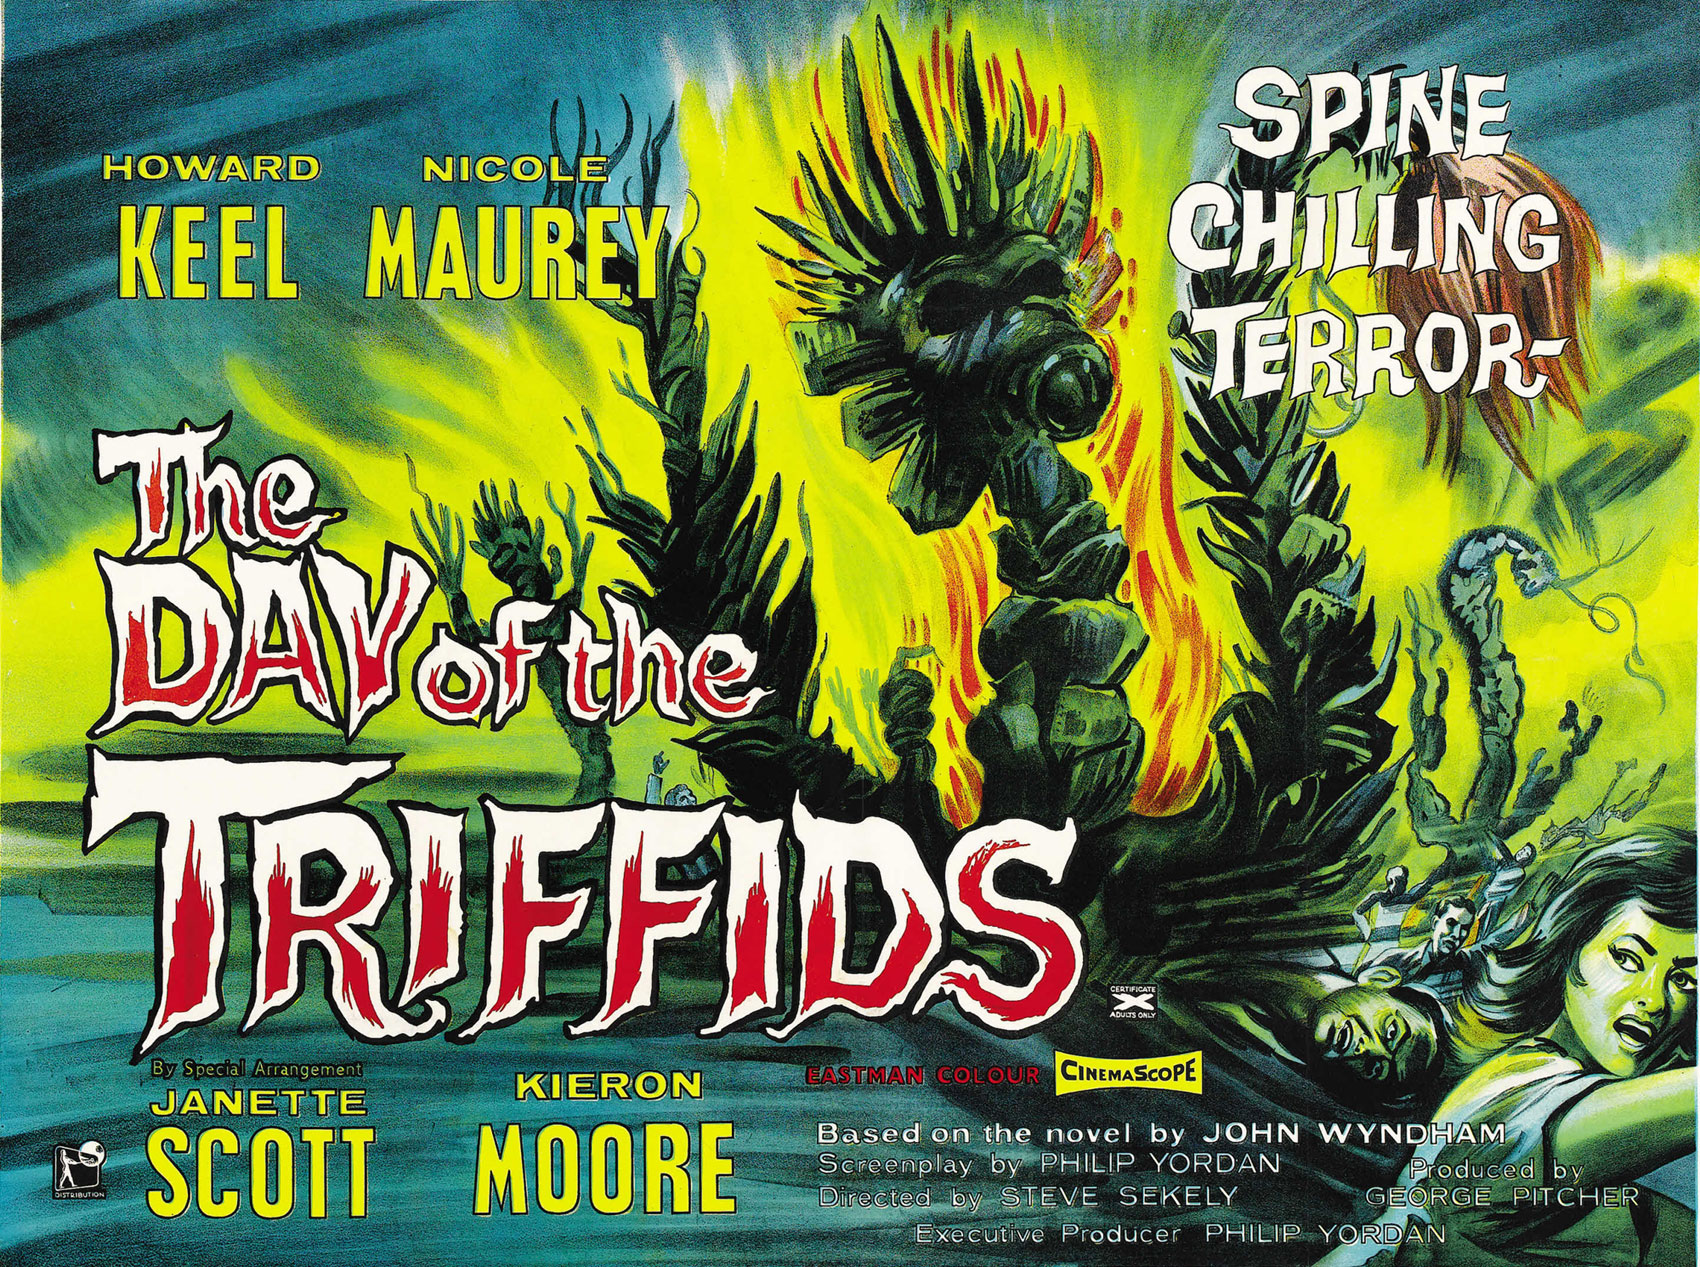 day of triffids The day of the triffids by john wyndham is a post apocalyptic story of survival against a breed of ravenous killer plants.